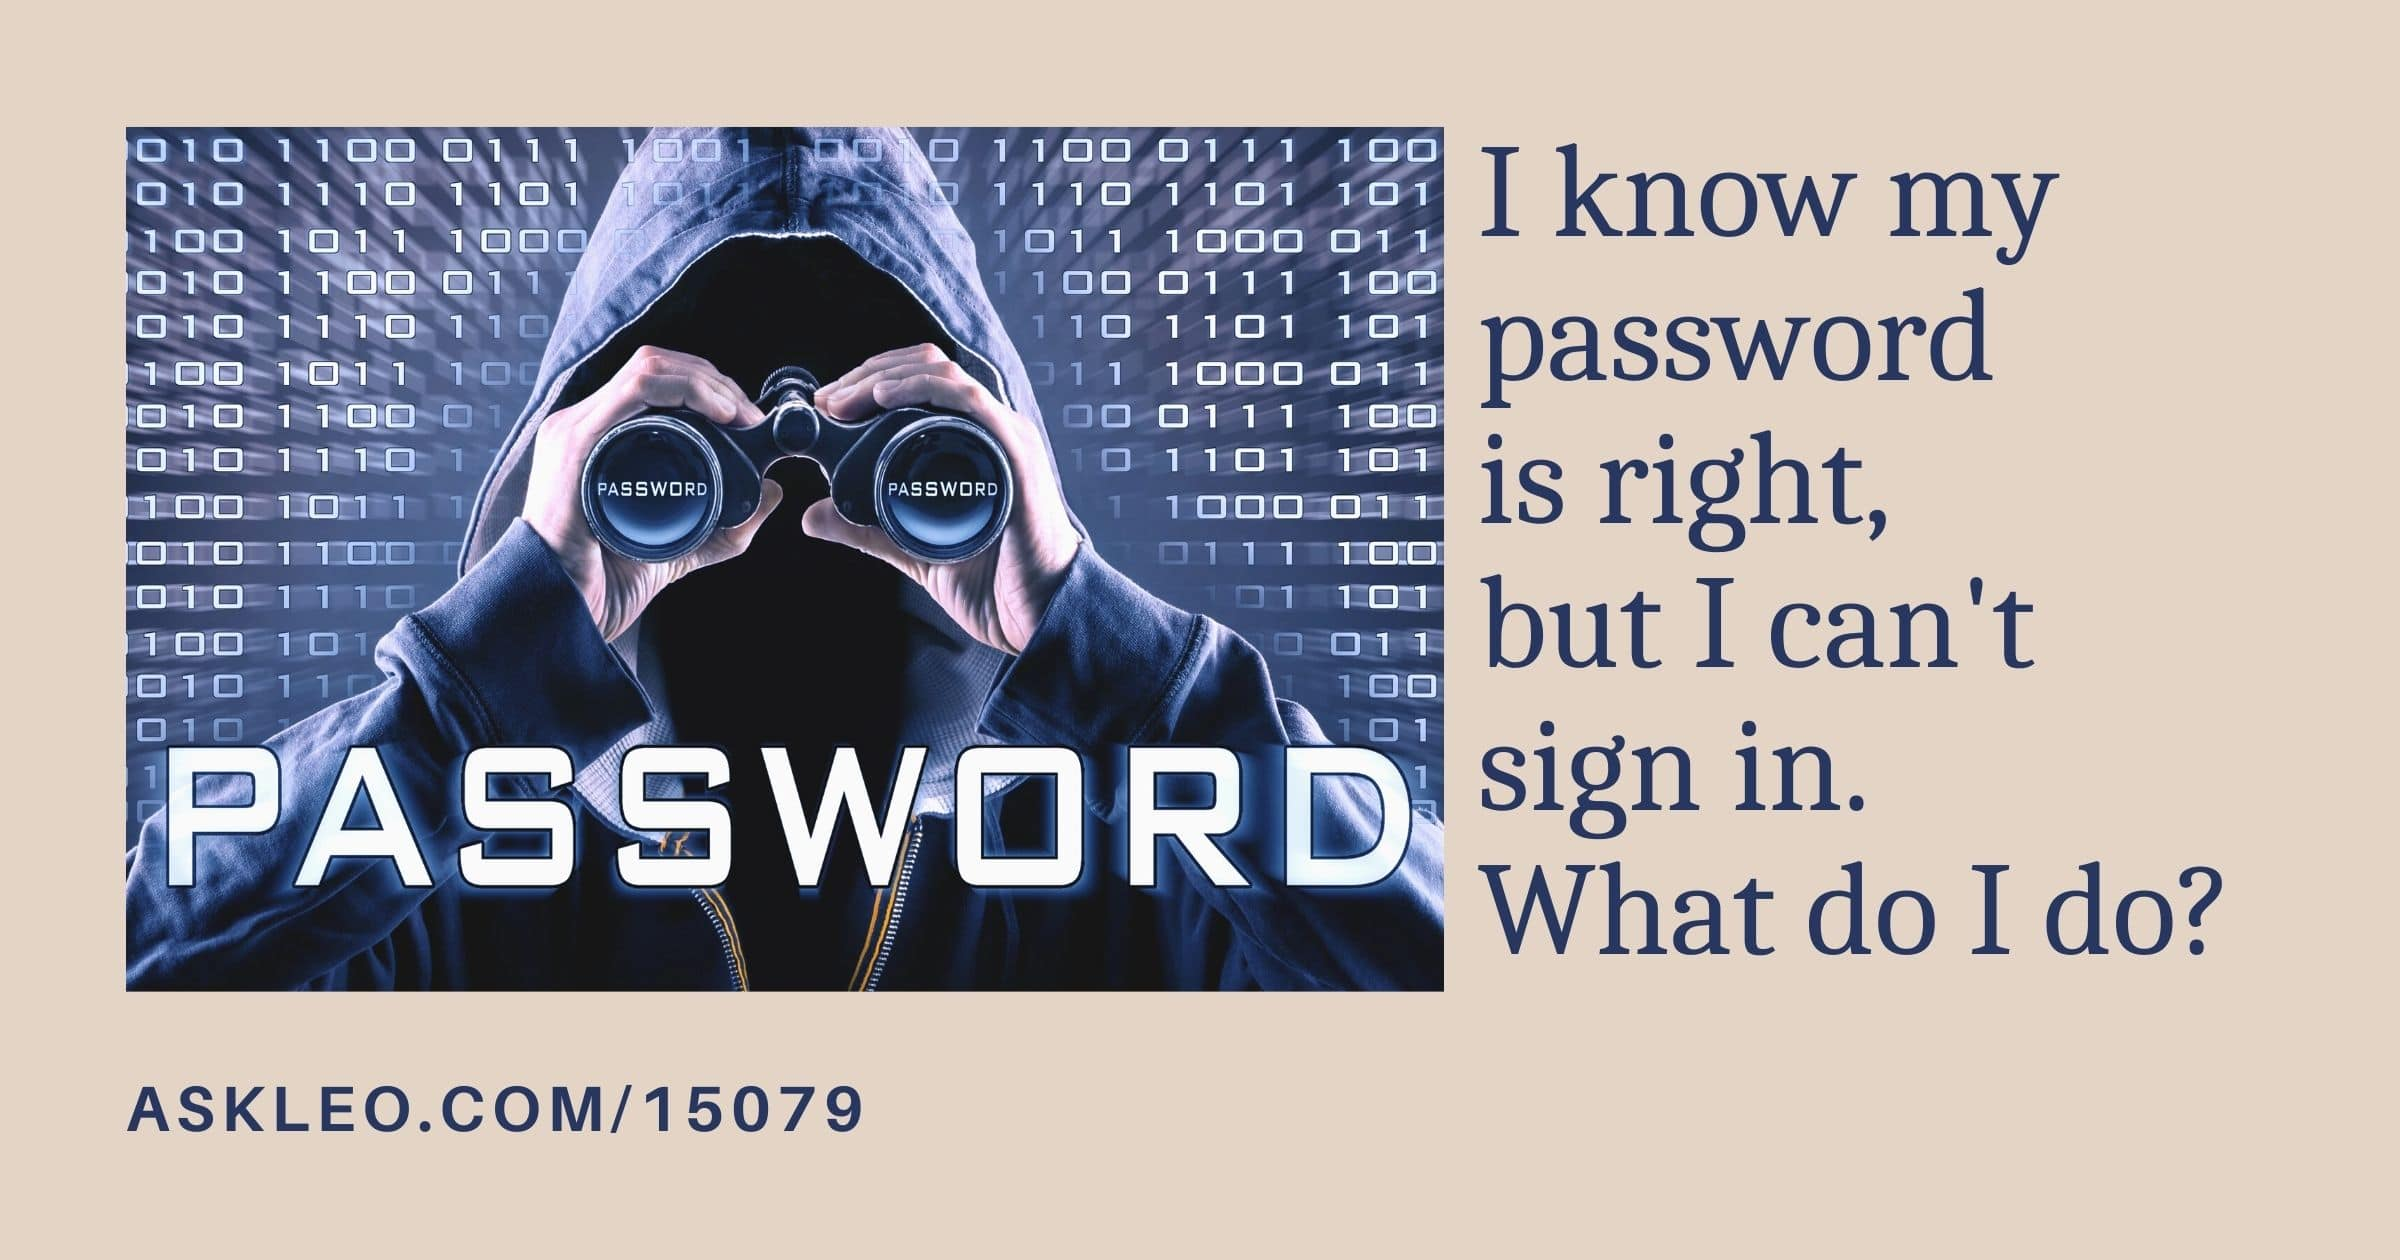 I Know My Password is Right But I Can't Sign In. What Do I Do?